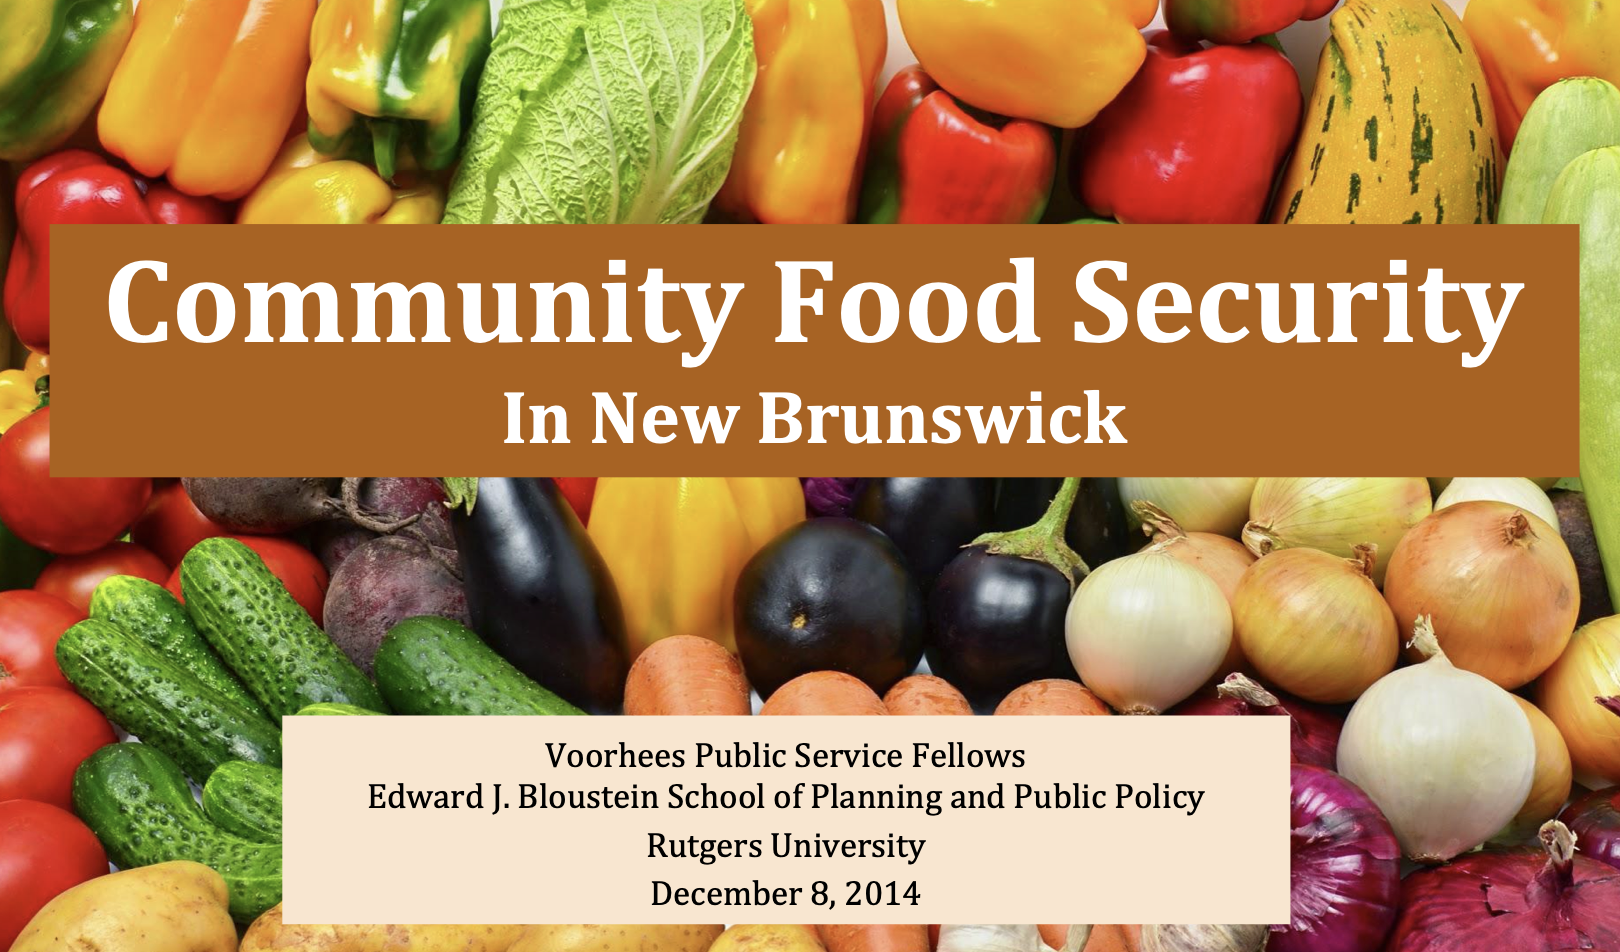 food insecurity New Brunswick New Jersey Rutgers Voorhees Center Civic Engagement Research